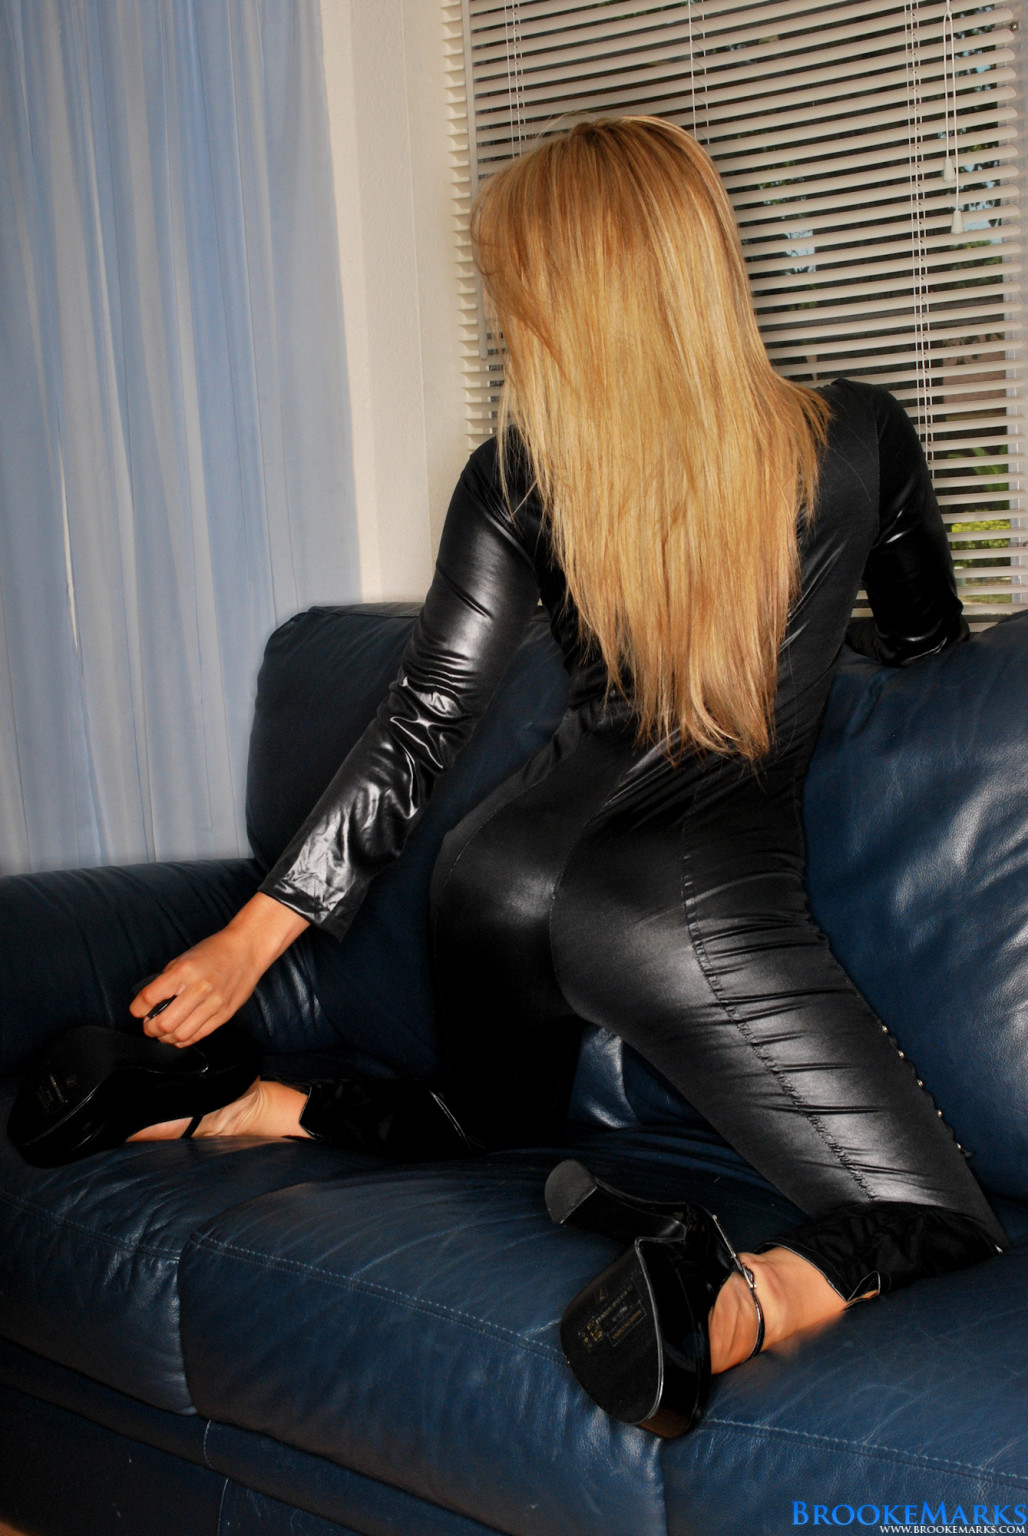 Brooke marks in a catwoman clothing